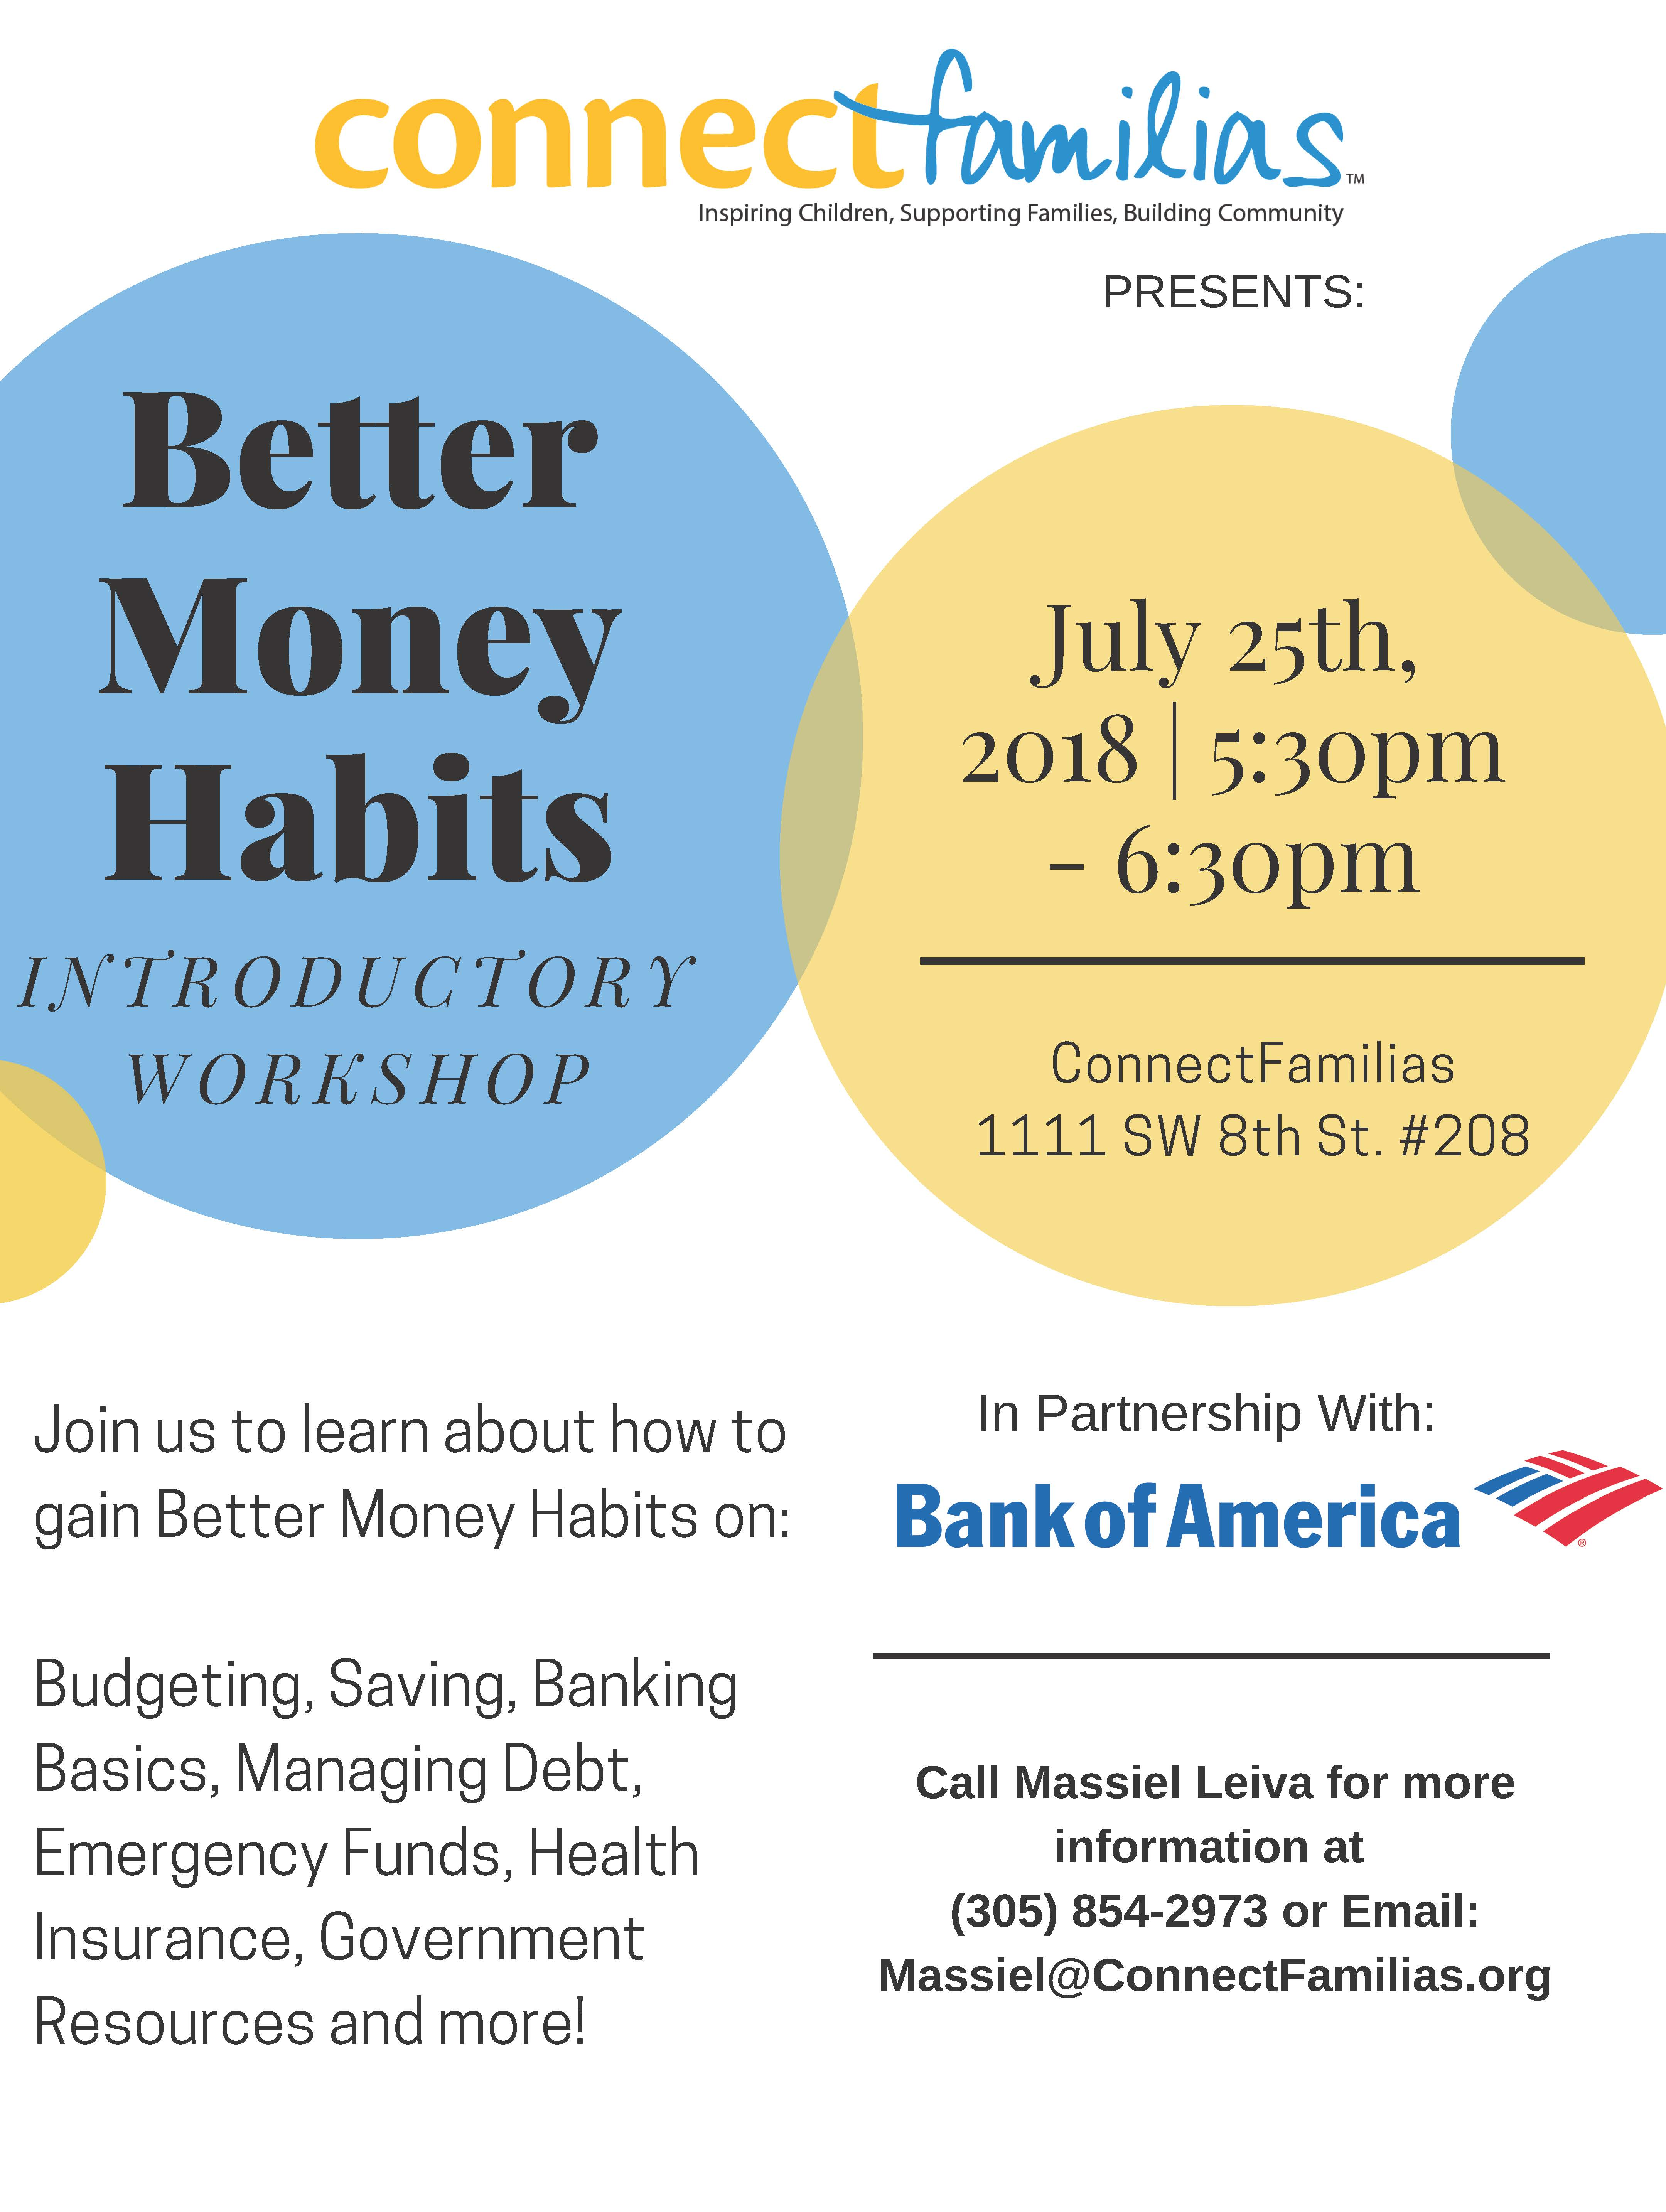 Join ConnectFamilias, in partnership with Bank of America, for a beginner's workshop on better managing your finances! Topics will include: budgeting, saving, banking basics, managing debt, emergency funds, health insurance, government resources and more. Space is limited, call Massiel Leiva at 305.854.2973 to reserve your spot today!